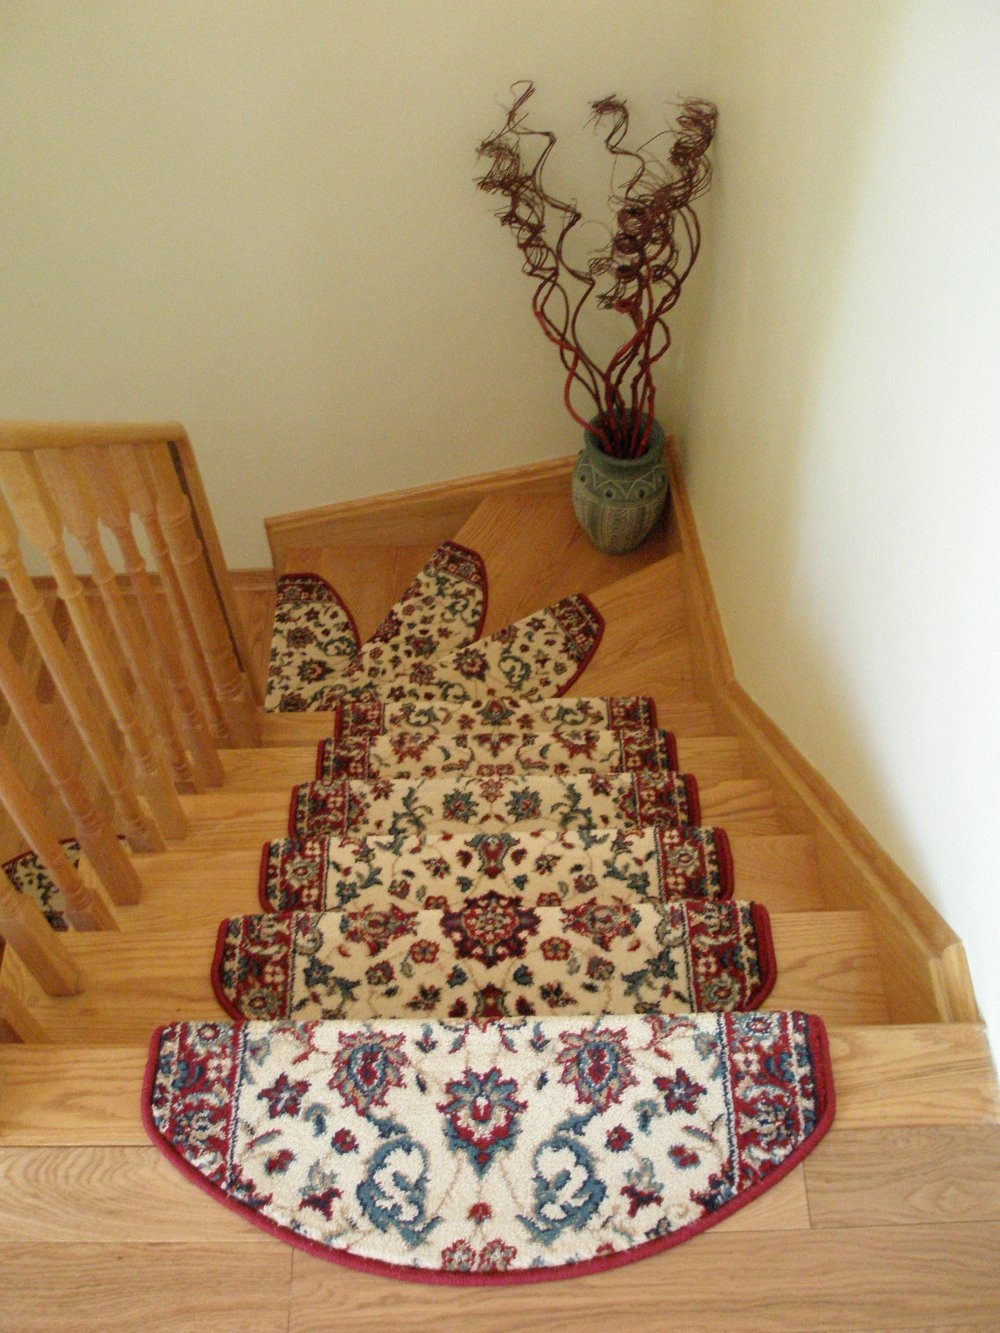 Carpet Stair Treads Stair Mats Stair Rugs Intended For Rugs For Staircases (#13 of 20)